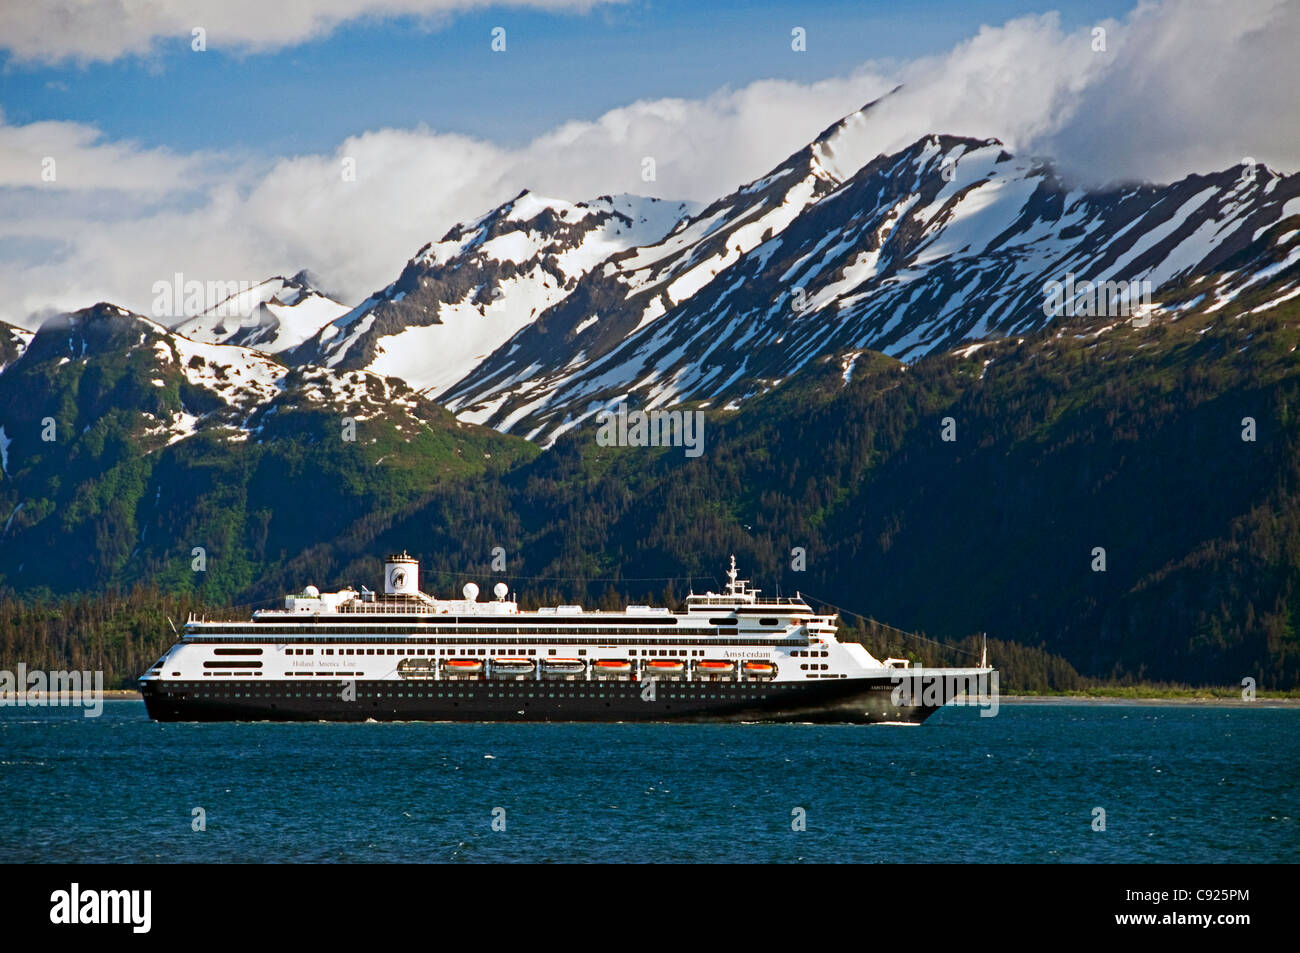 A cruise ship travels Kachemak Bay leaving port on the Homer Spit, Kenai Mountains in Kachemak Bay State Park, Alaska - Stock Image